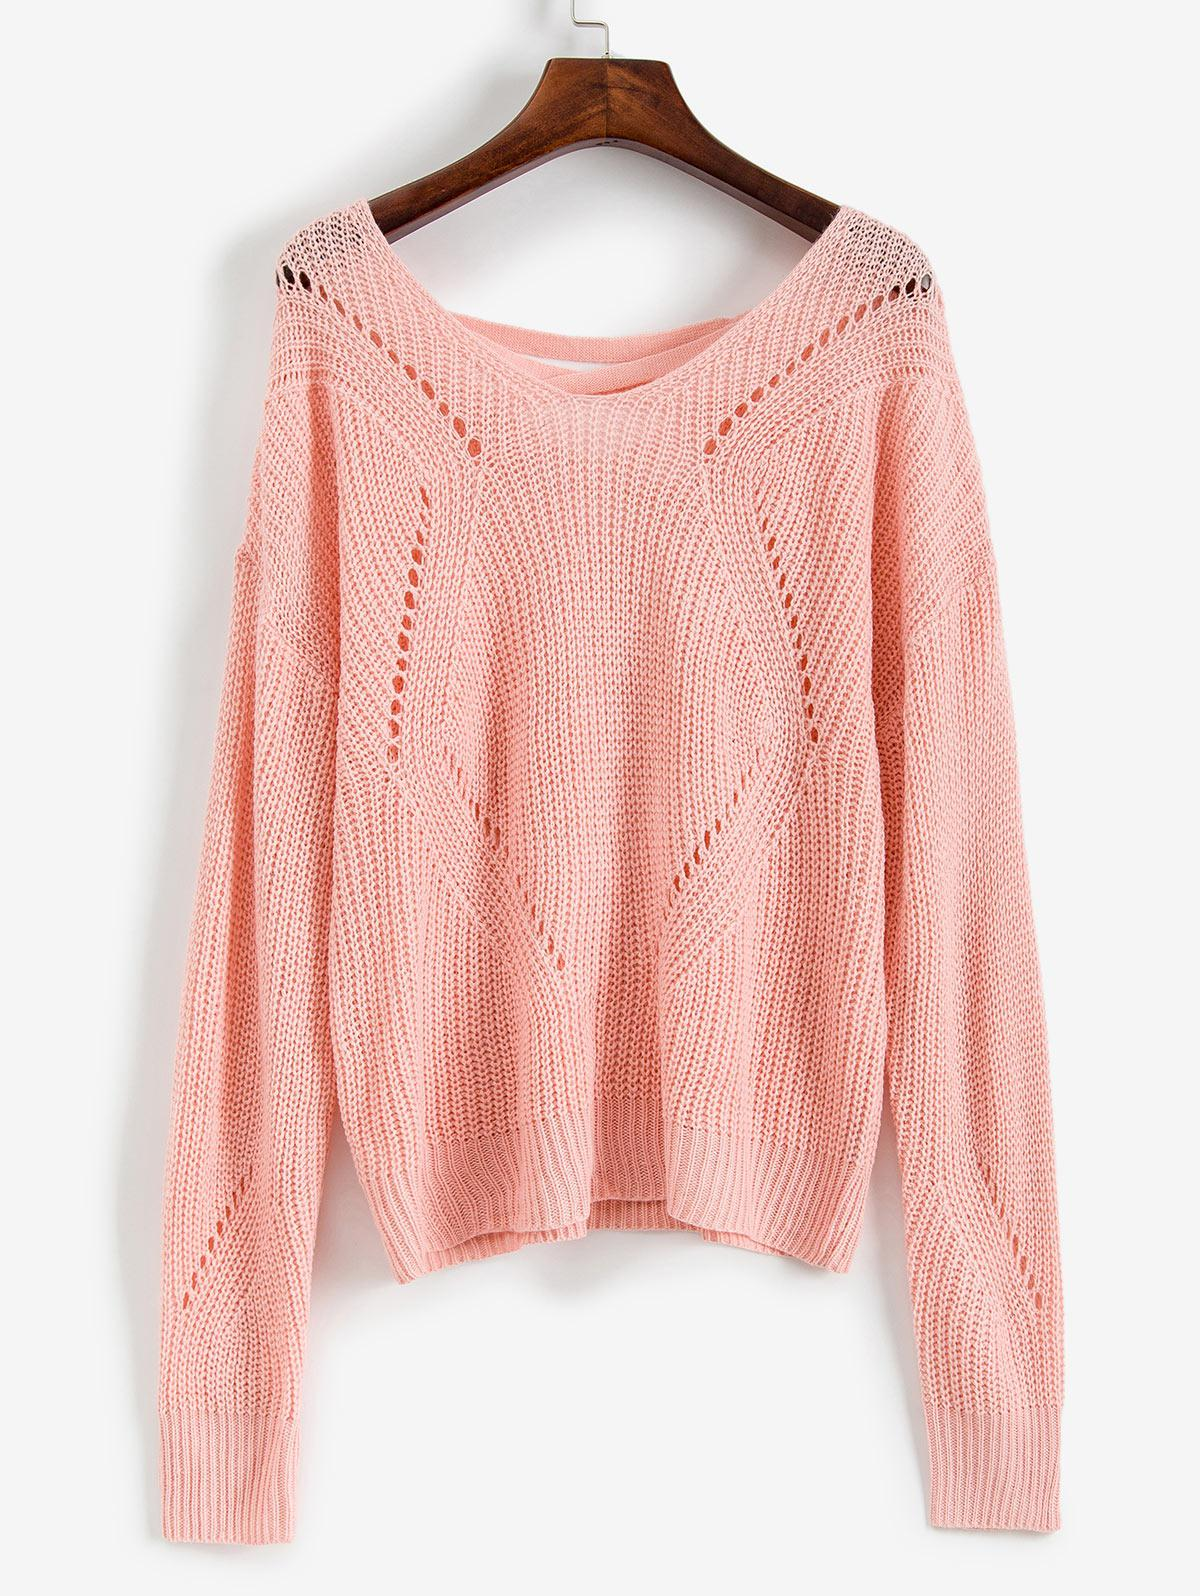 ZAFUL Scoop Neck Lace Up Open Knit Sweater